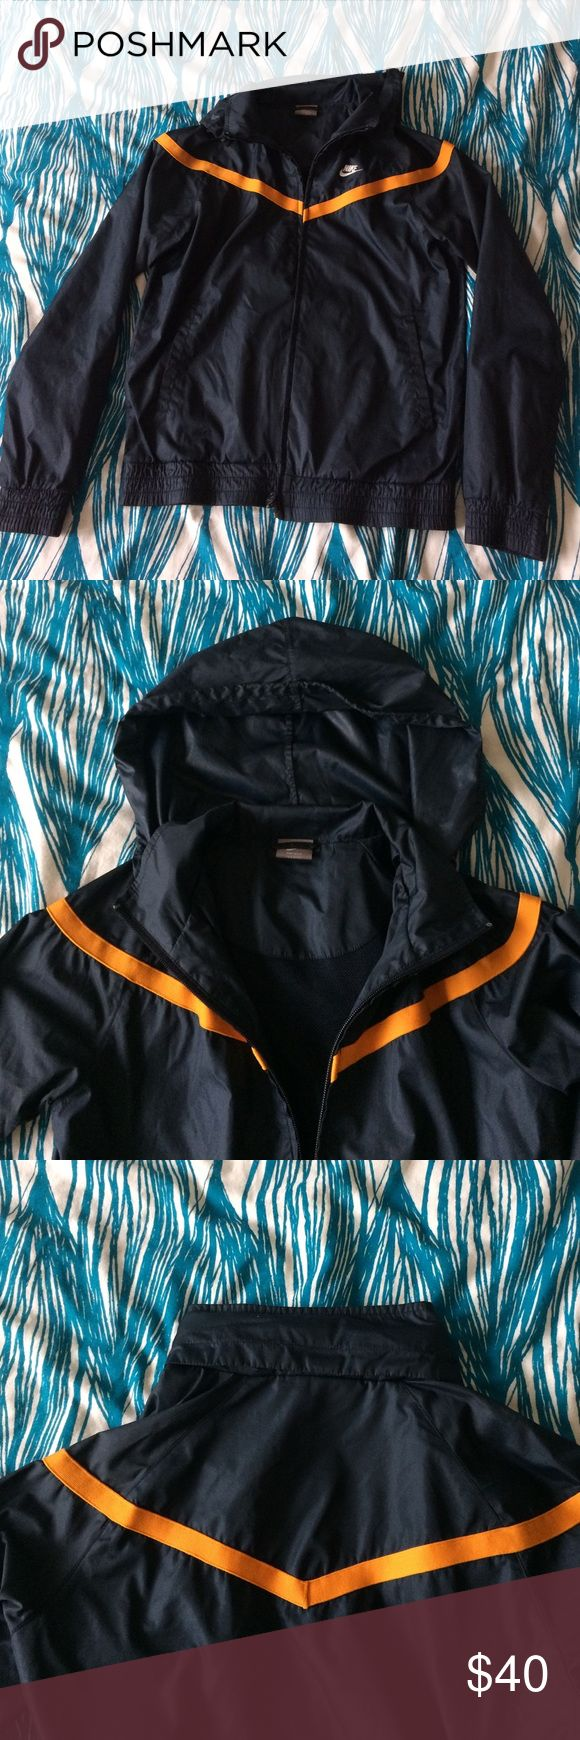 Nike sports jacket size S Navy blue polyester jacket with an orange line detail. The hood can be rolled up and concealed into the collar as seen in the third pic. The jacket has a mesh interior. Works really well in rainy and windy conditions. Very very durable. In great condition! Nike Jackets & Coats Utility Jackets